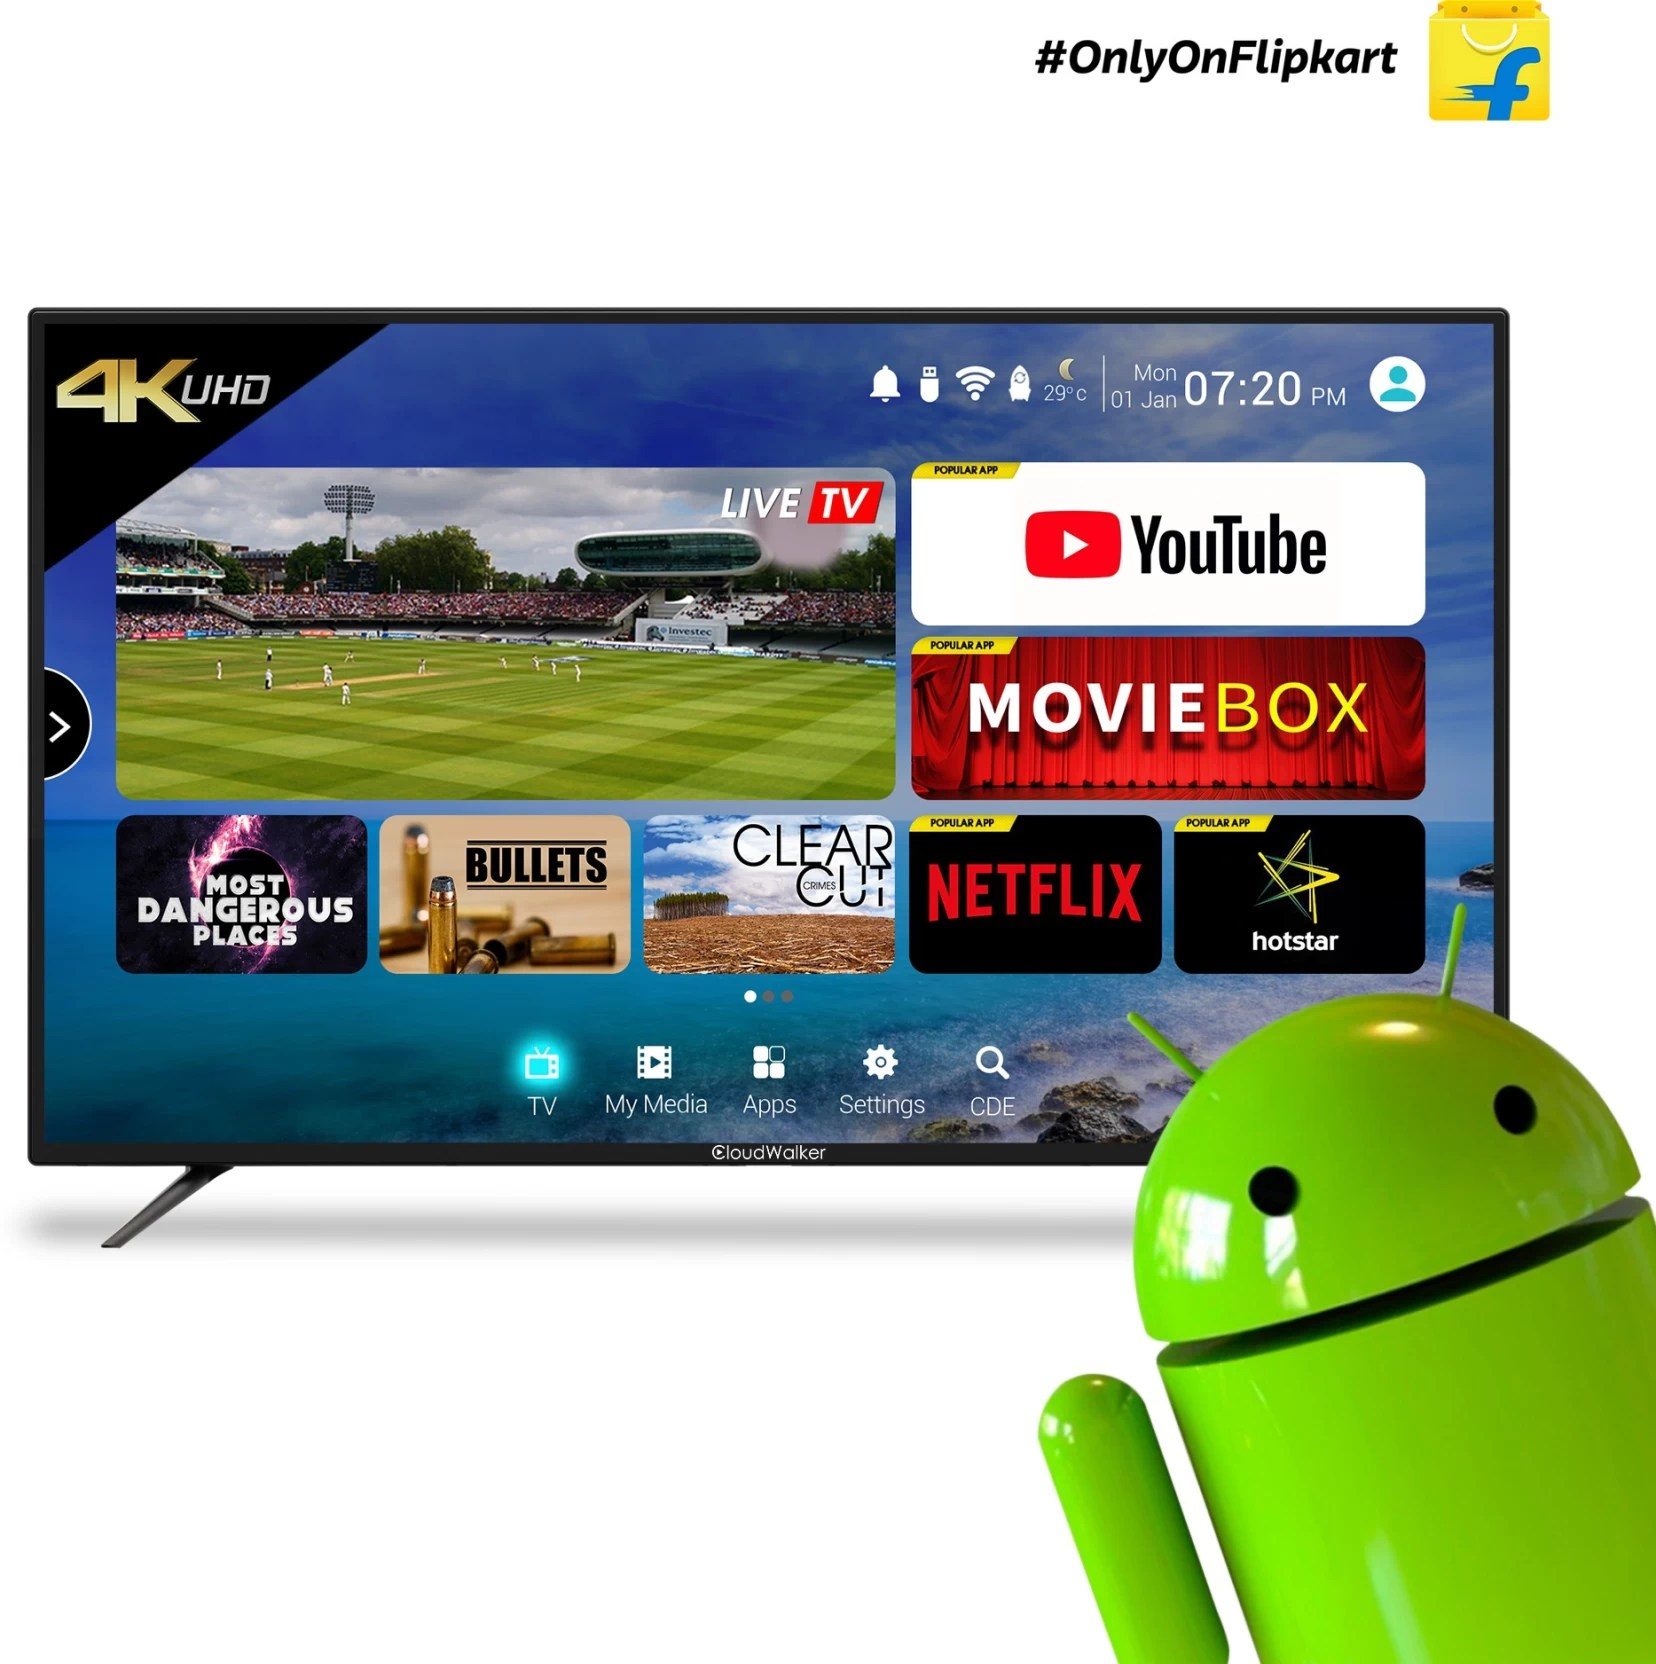 43 Inch Tv Cloudwalker 109cm 43 Inch Ultra Hd 4k Led Smart Tv